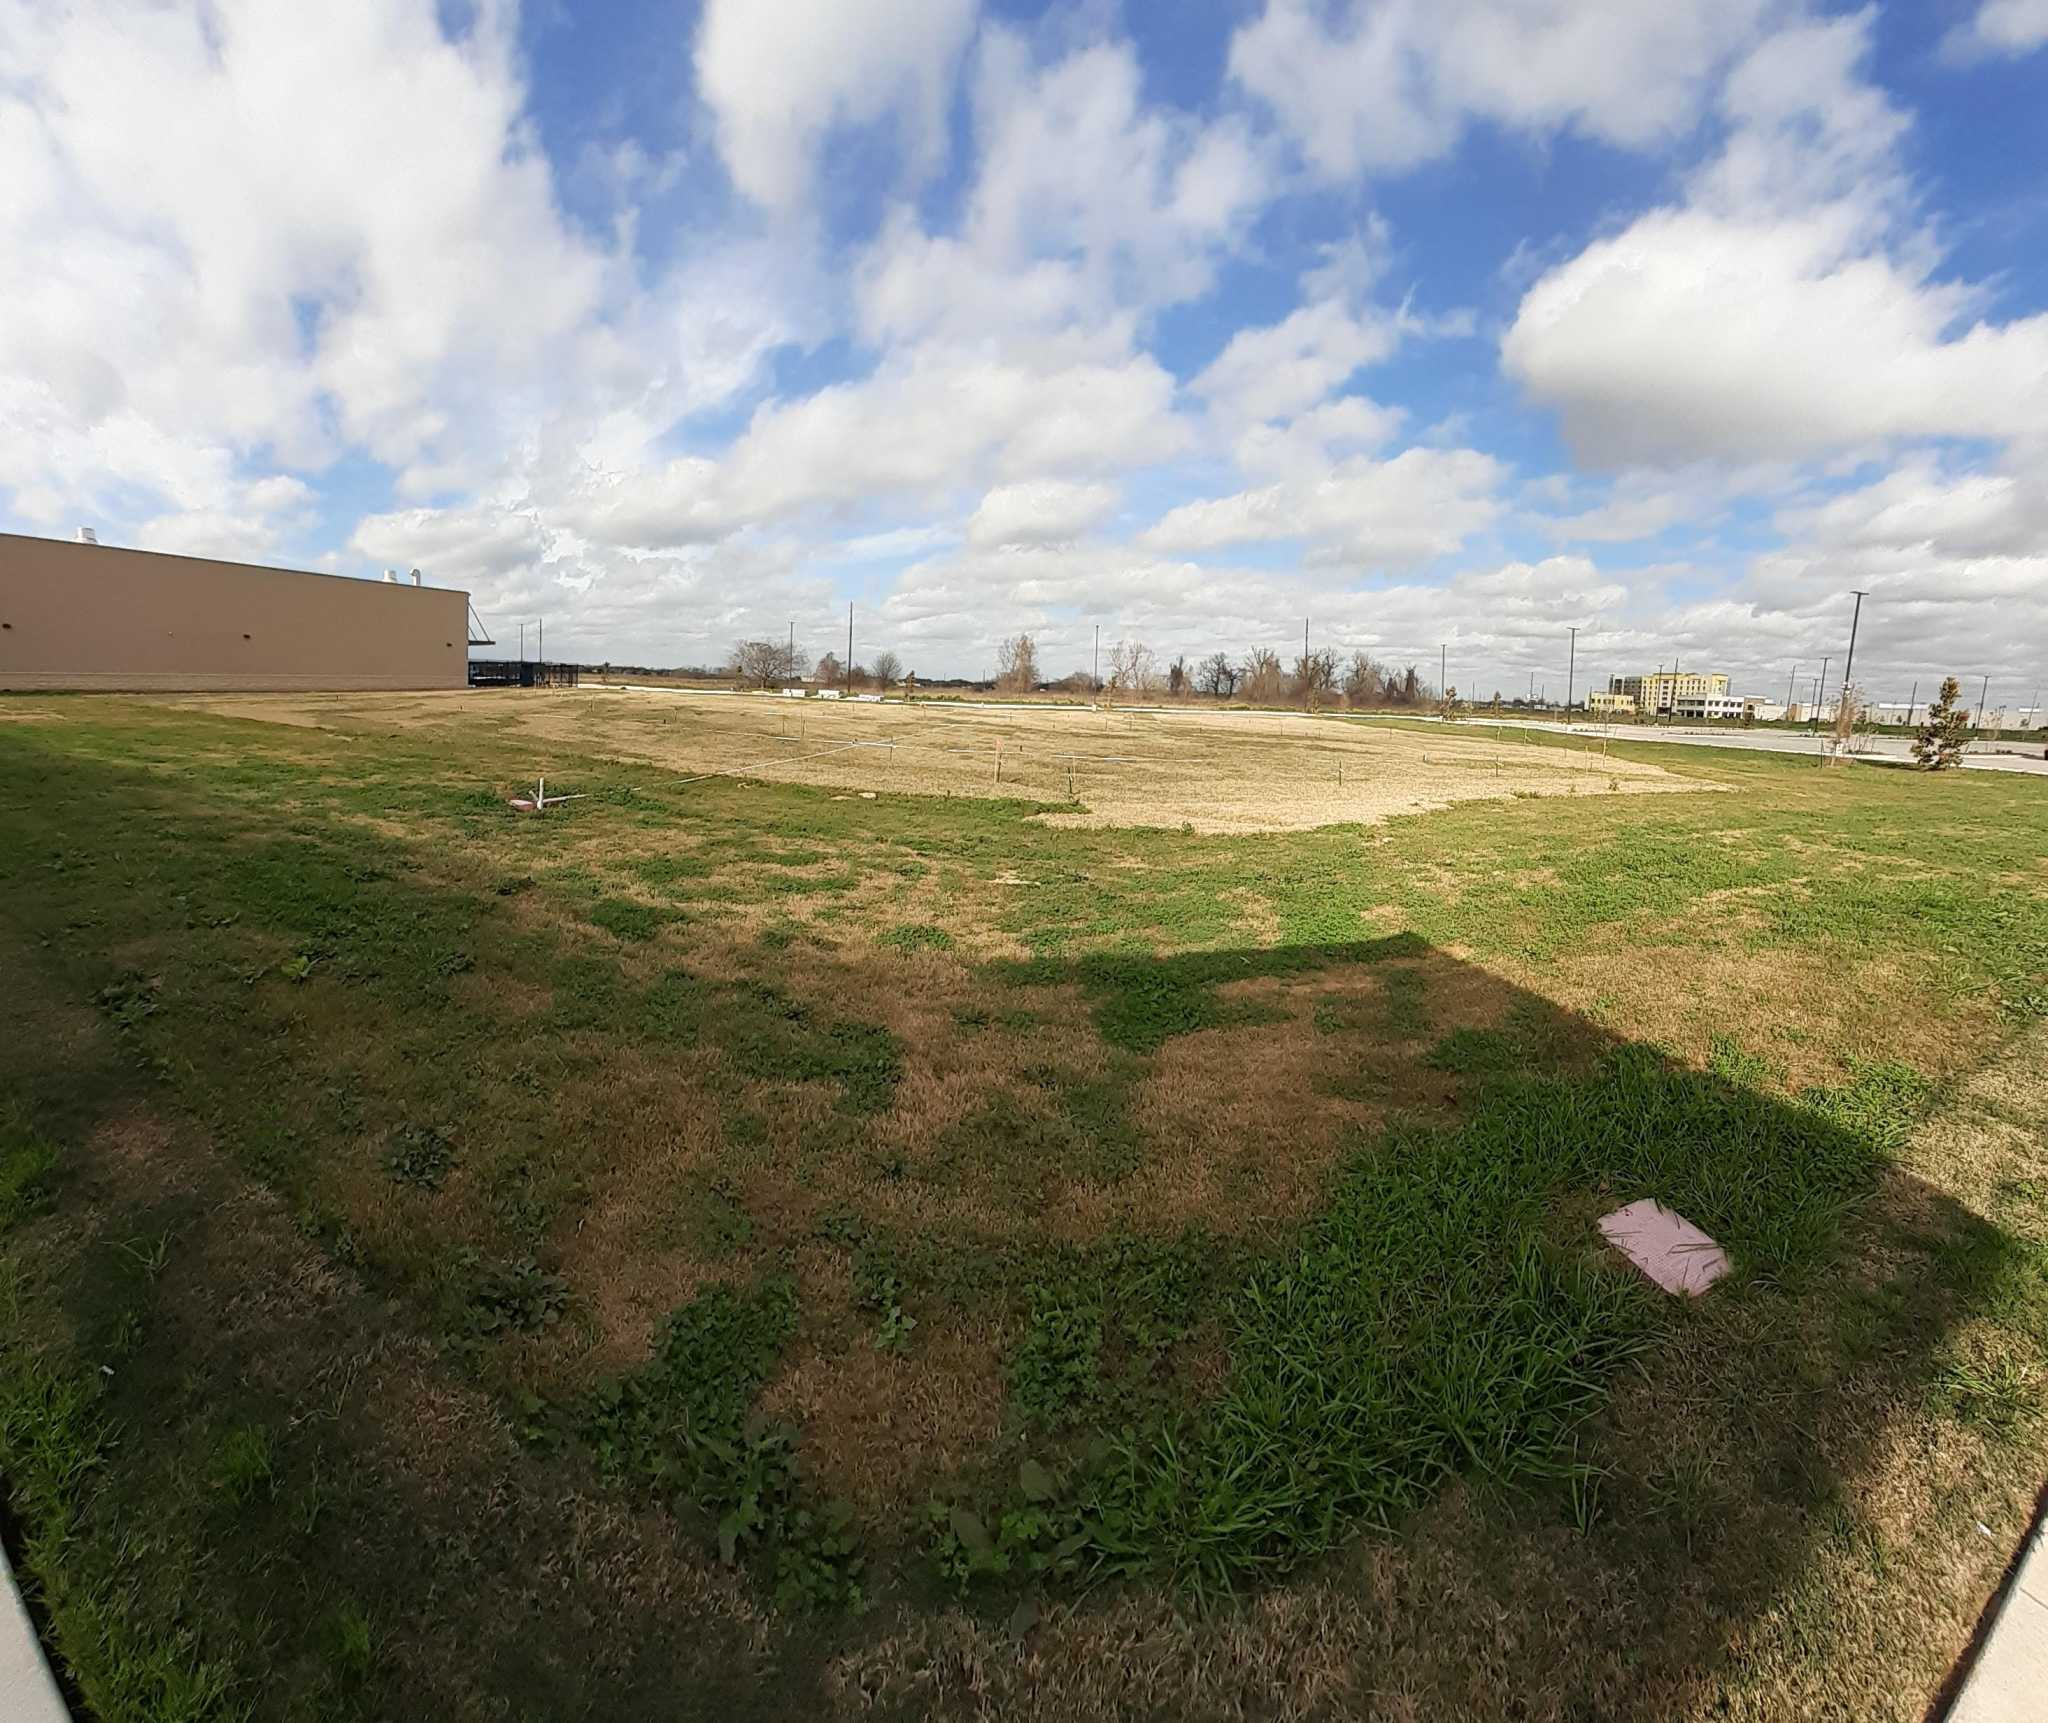 Questions linger over Fort Bend ISD's plan for site where remains of 95 African-Americans were found